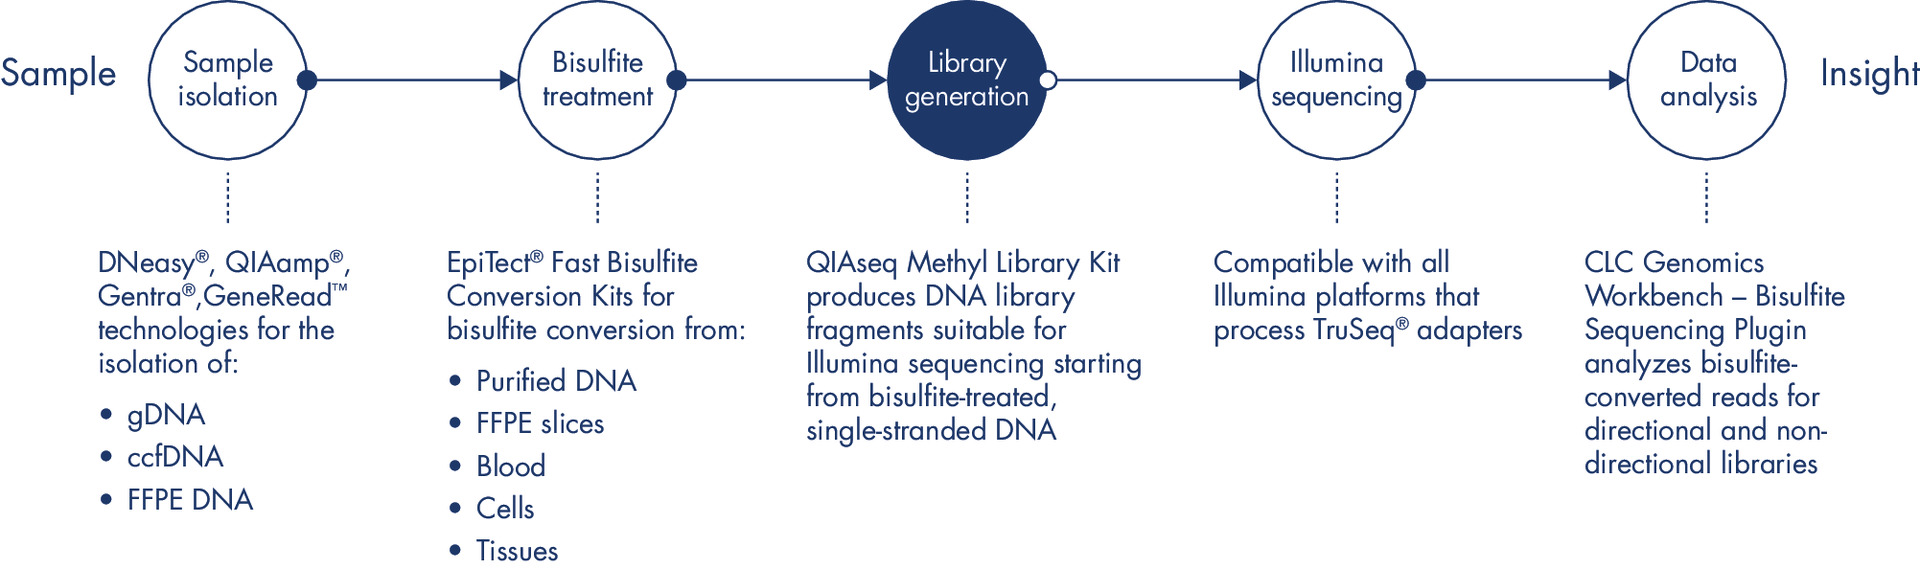 Sample to Insight workflow for the analysis of methylation events.